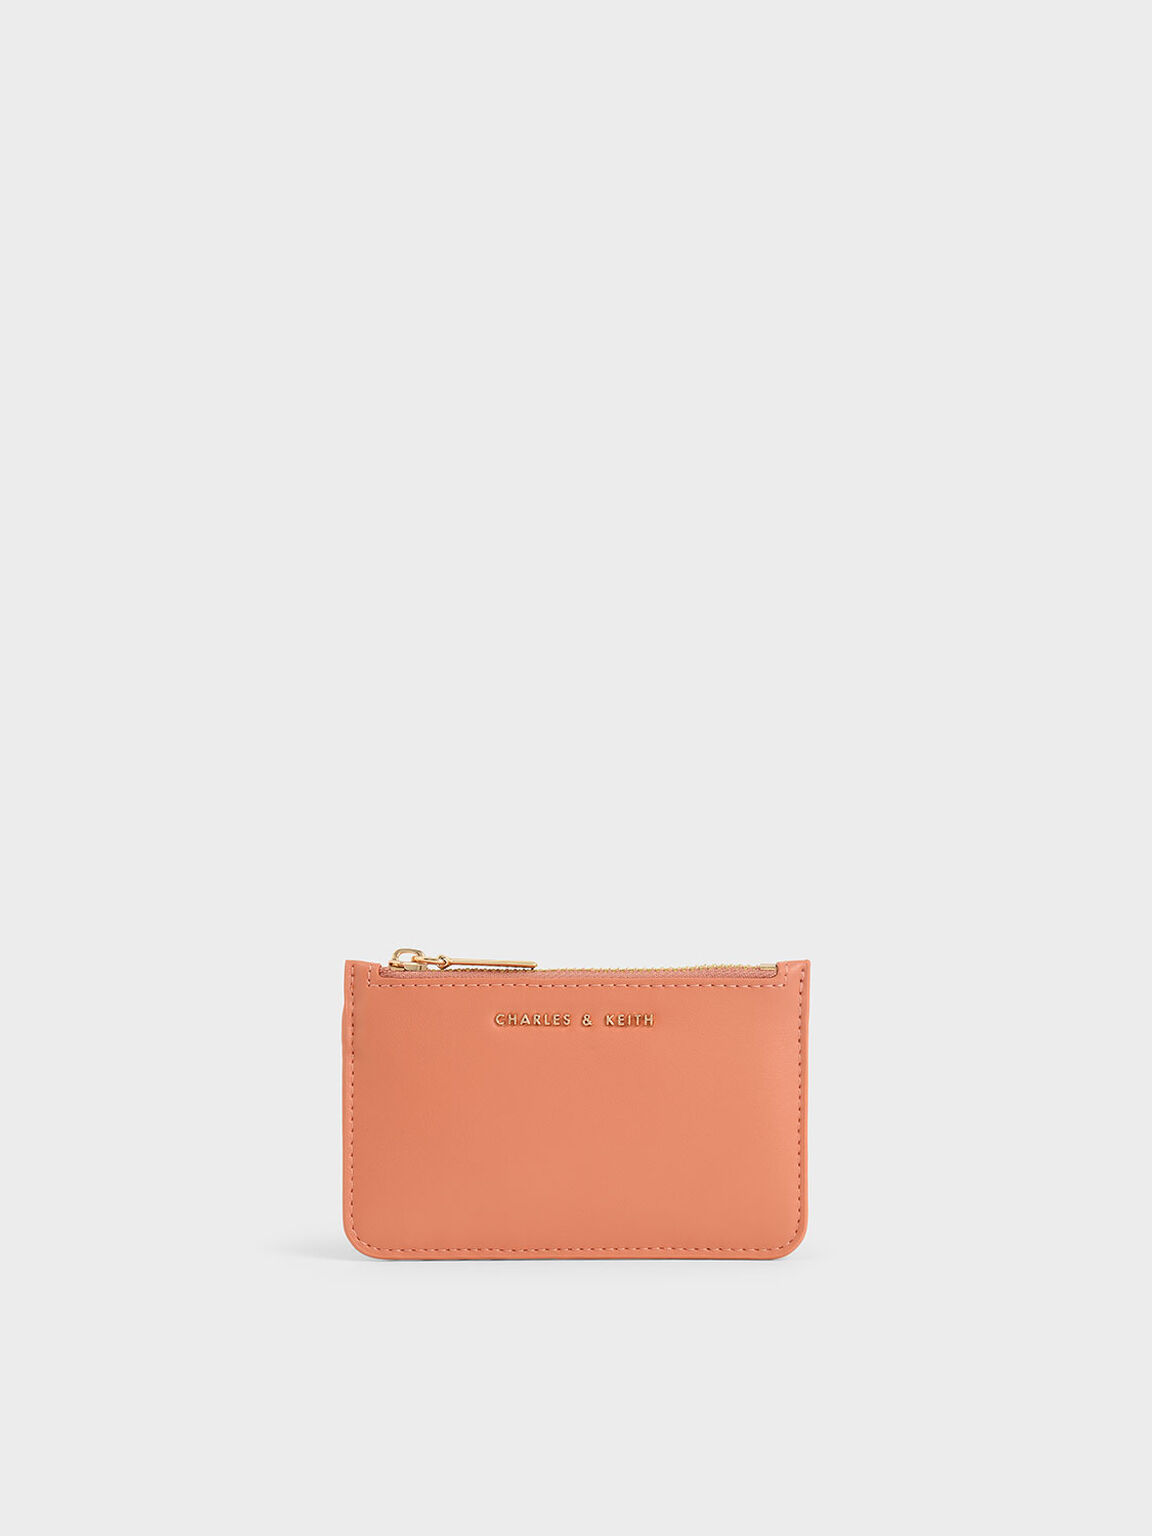 Top Zip Card Holder, Peach, hi-res